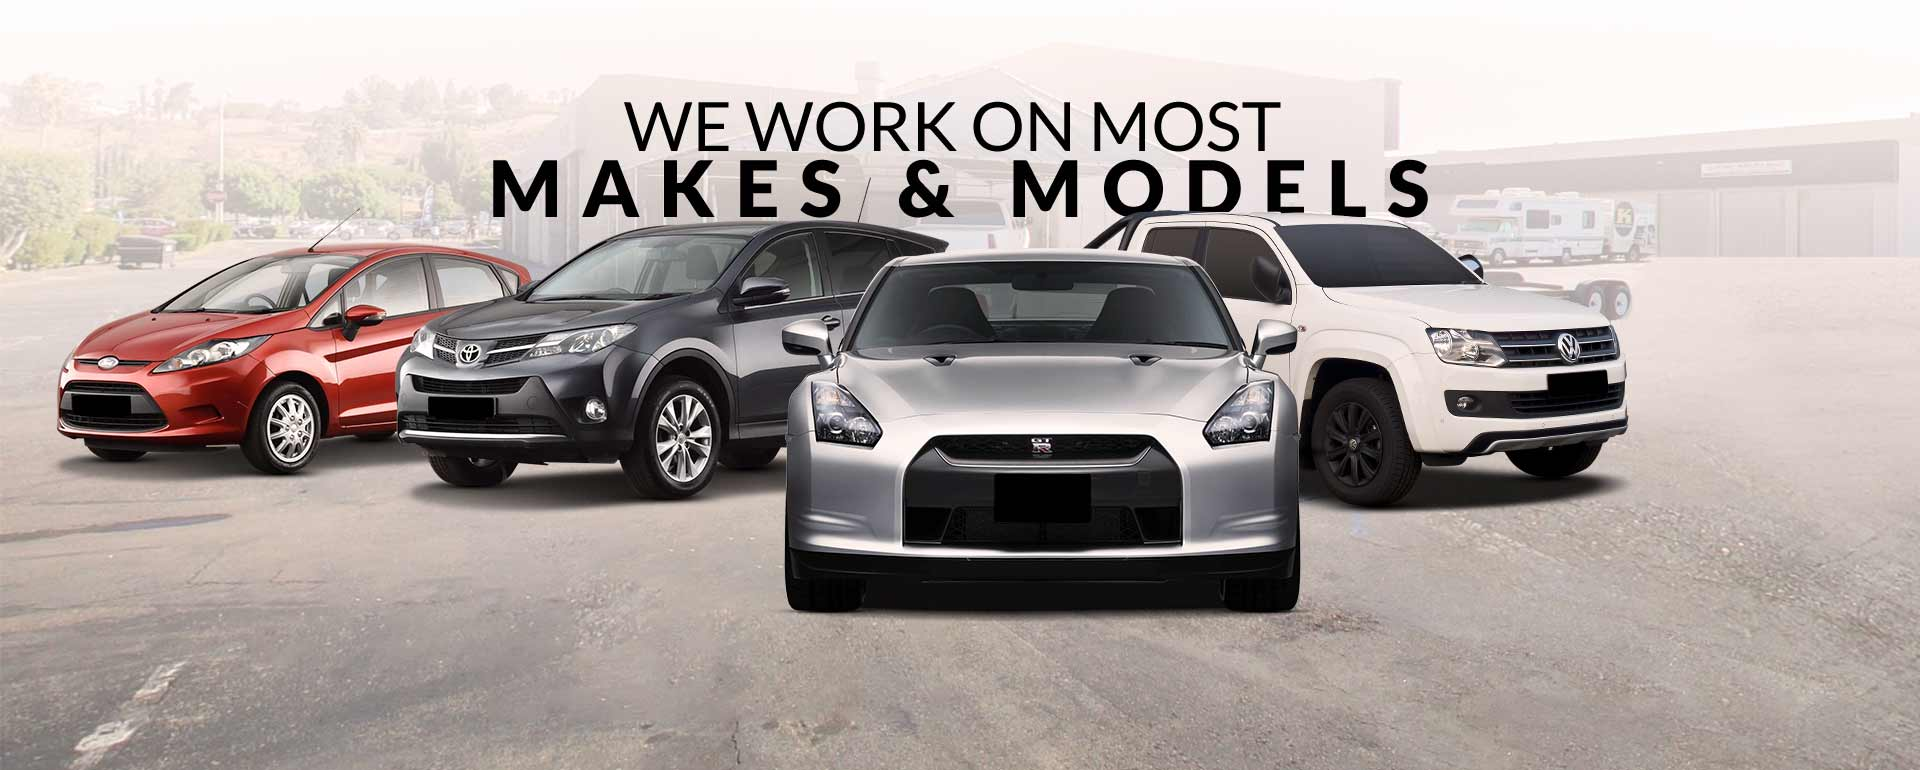 We work on most makes and models